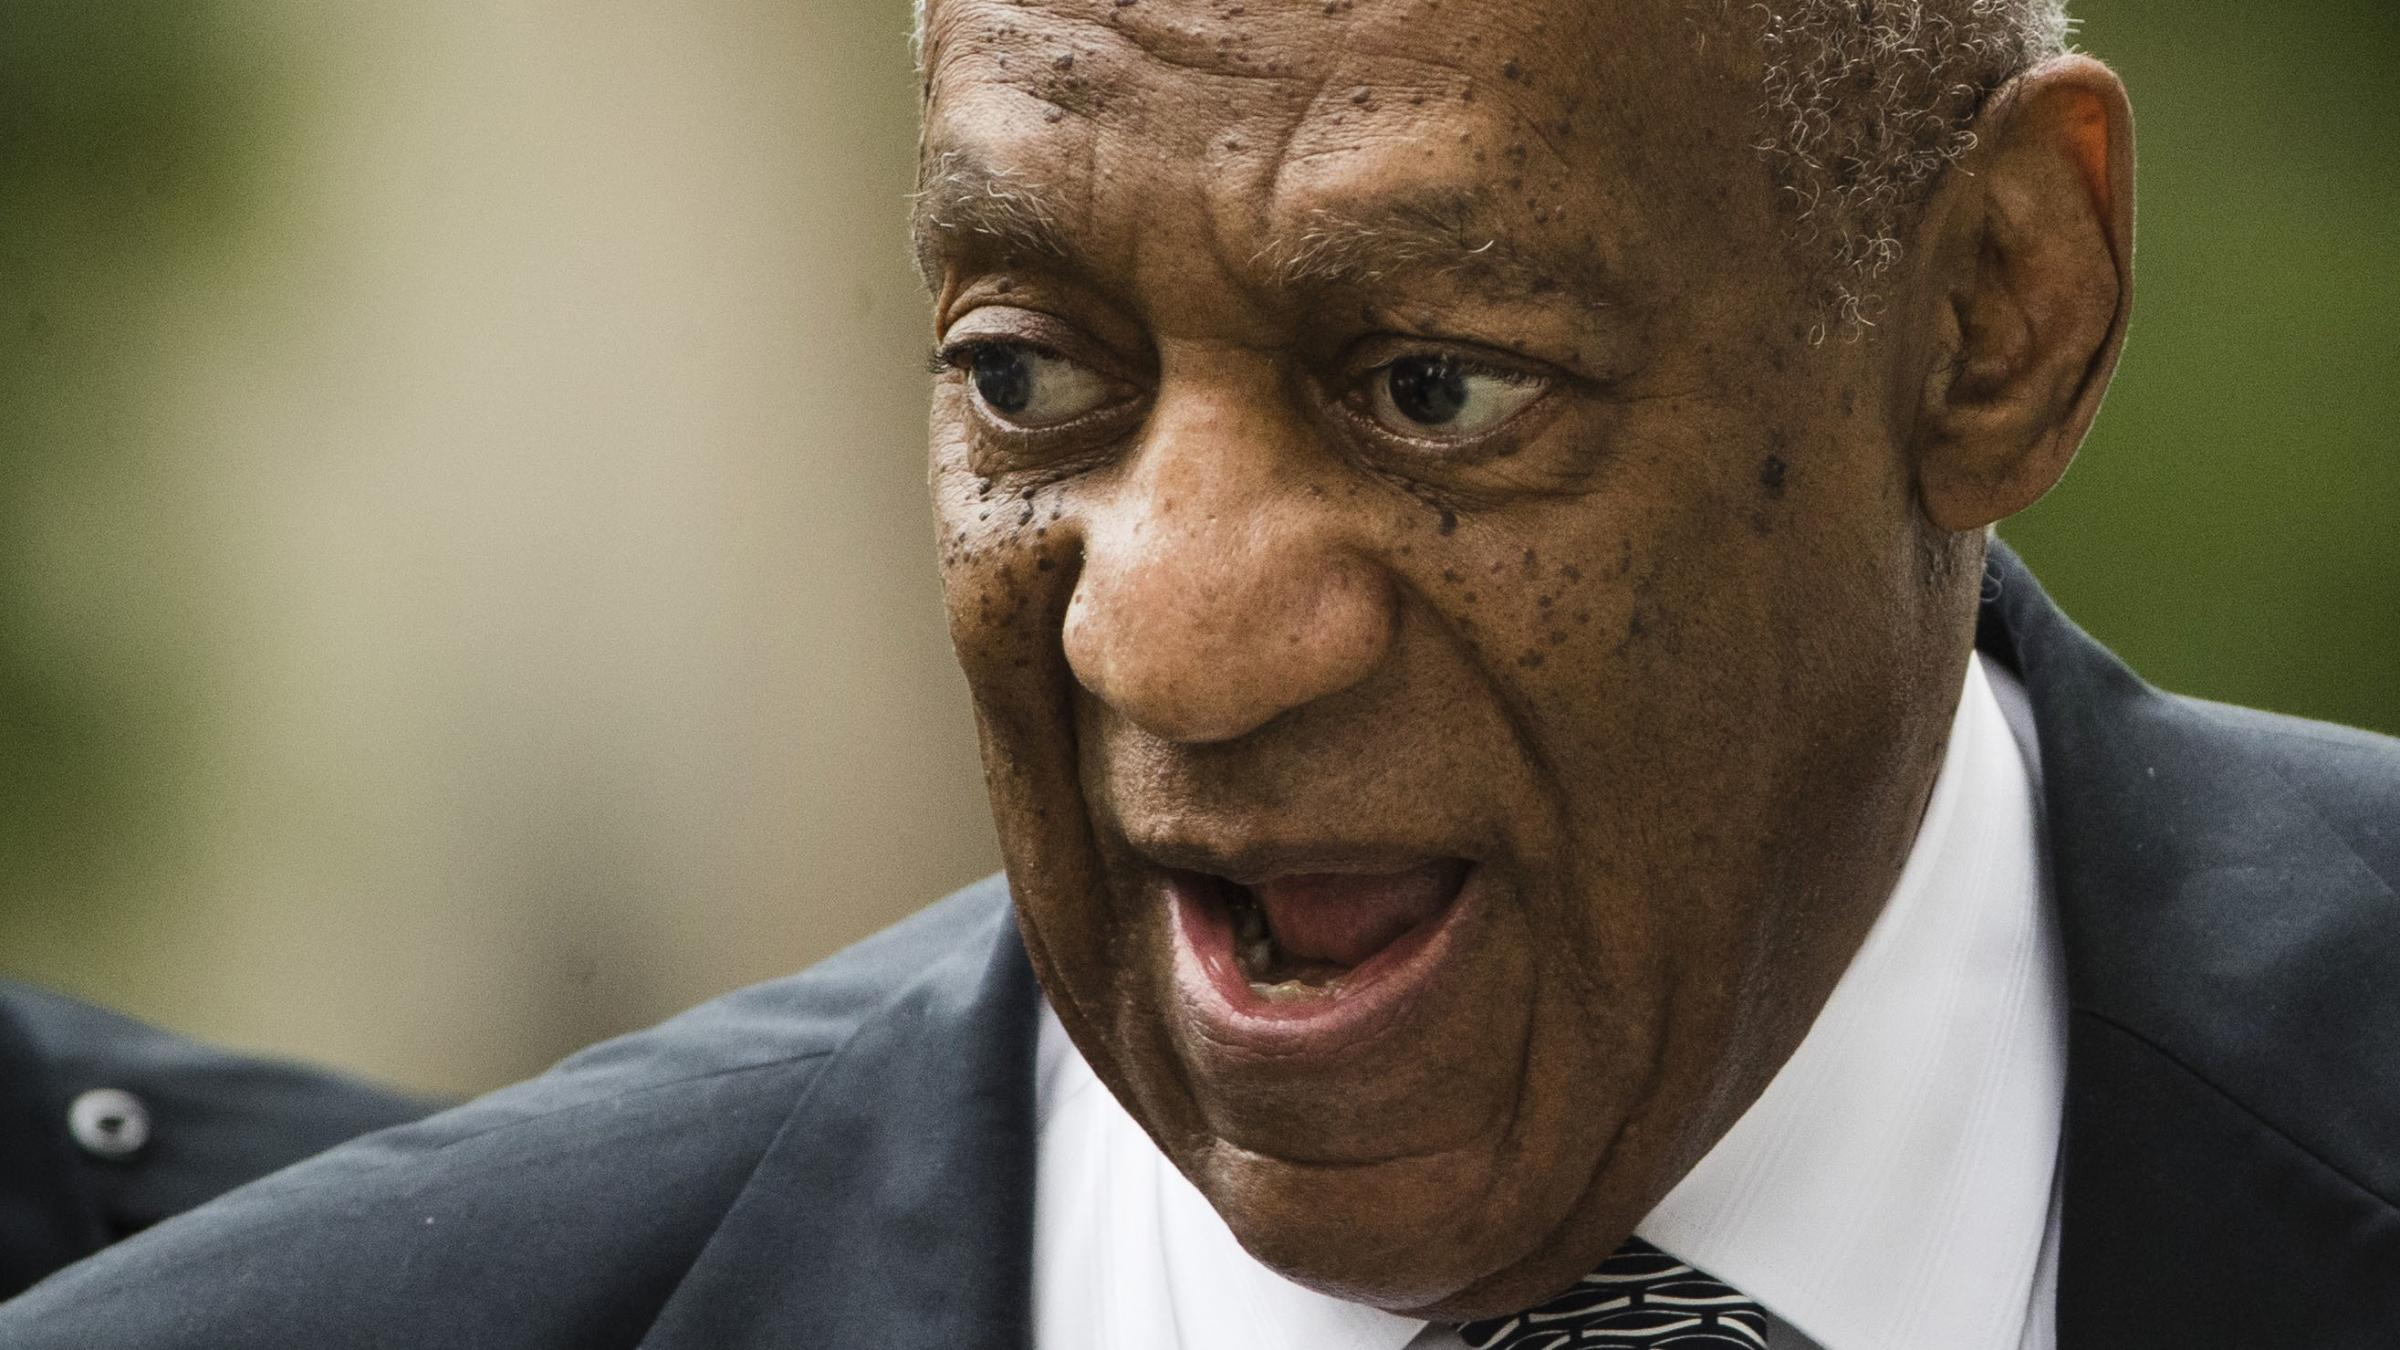 Cosby trial jury begins first full day of deliberations today